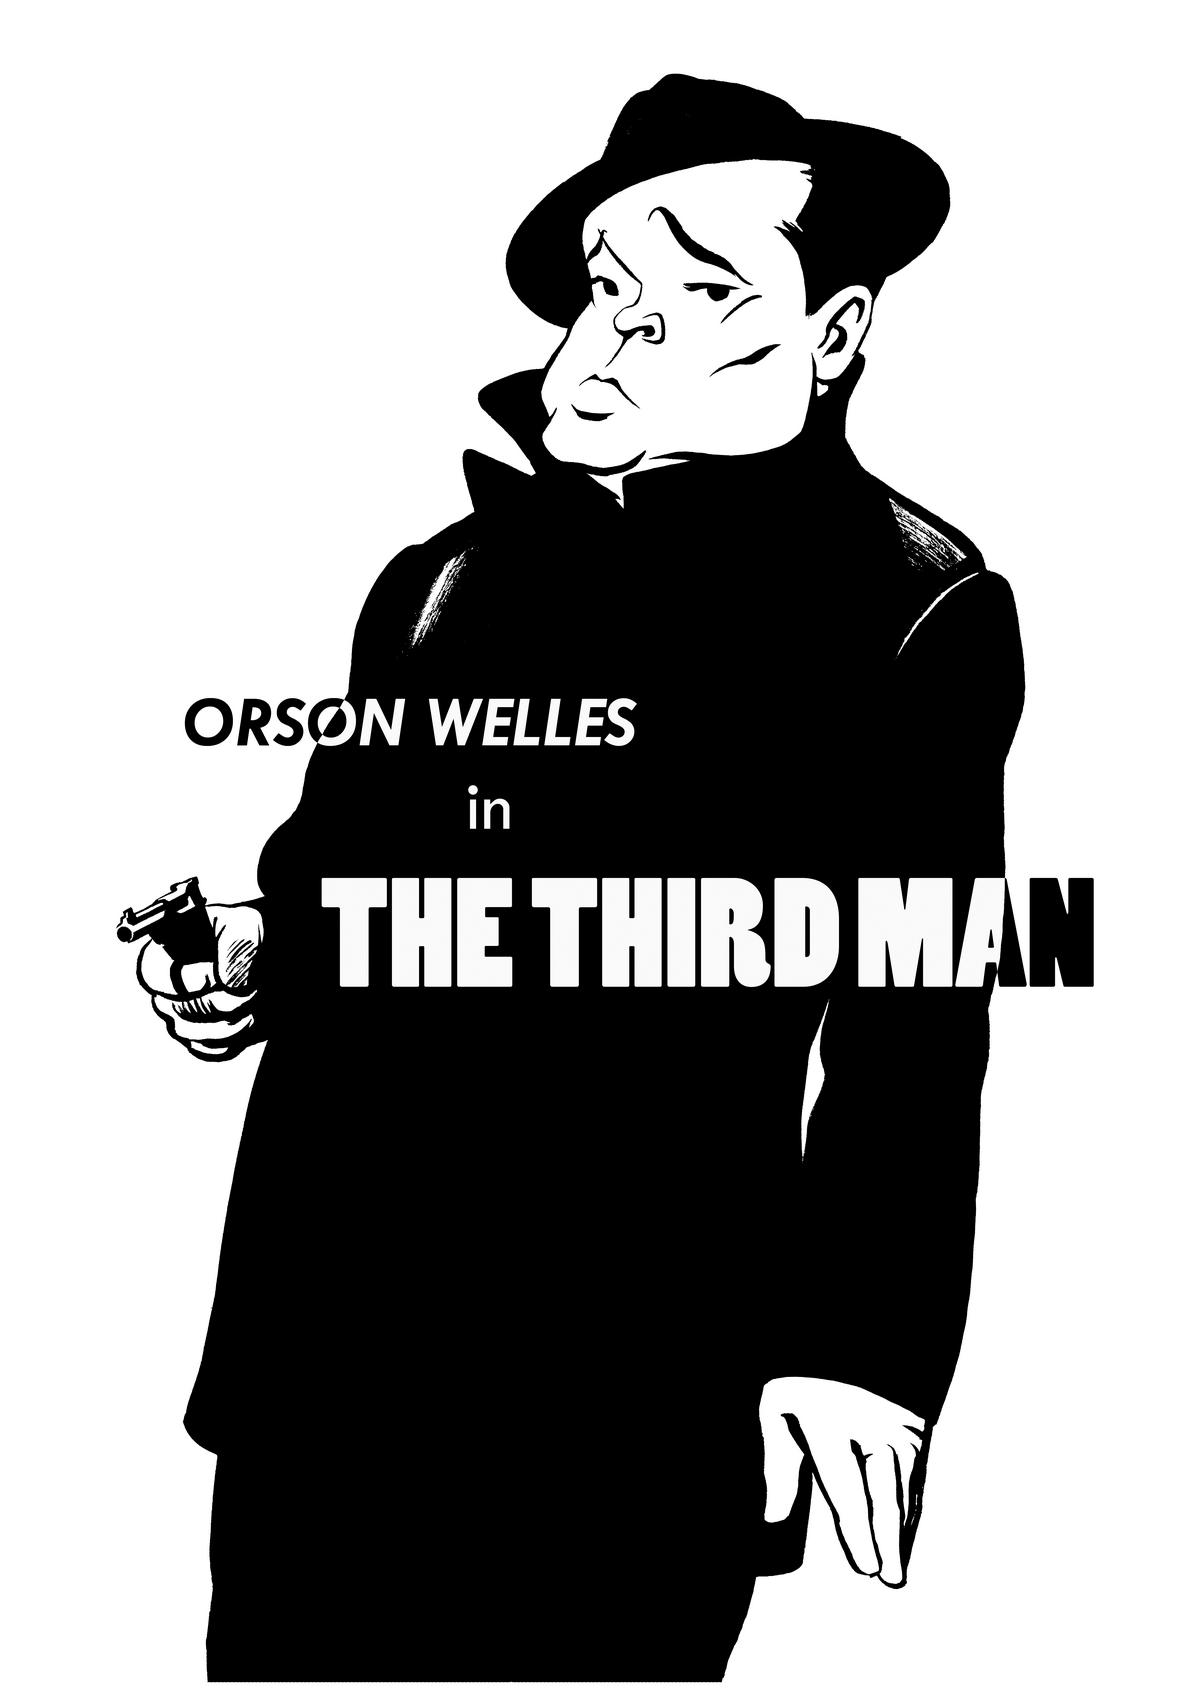 Orson Welles caricature, The Third Man, Film Noir, Harry Lime, Graham Greene. By Ken Lowe Illustration. Limited edition prints available, size A2 or A3, signed and numbered by Ken Lowe.